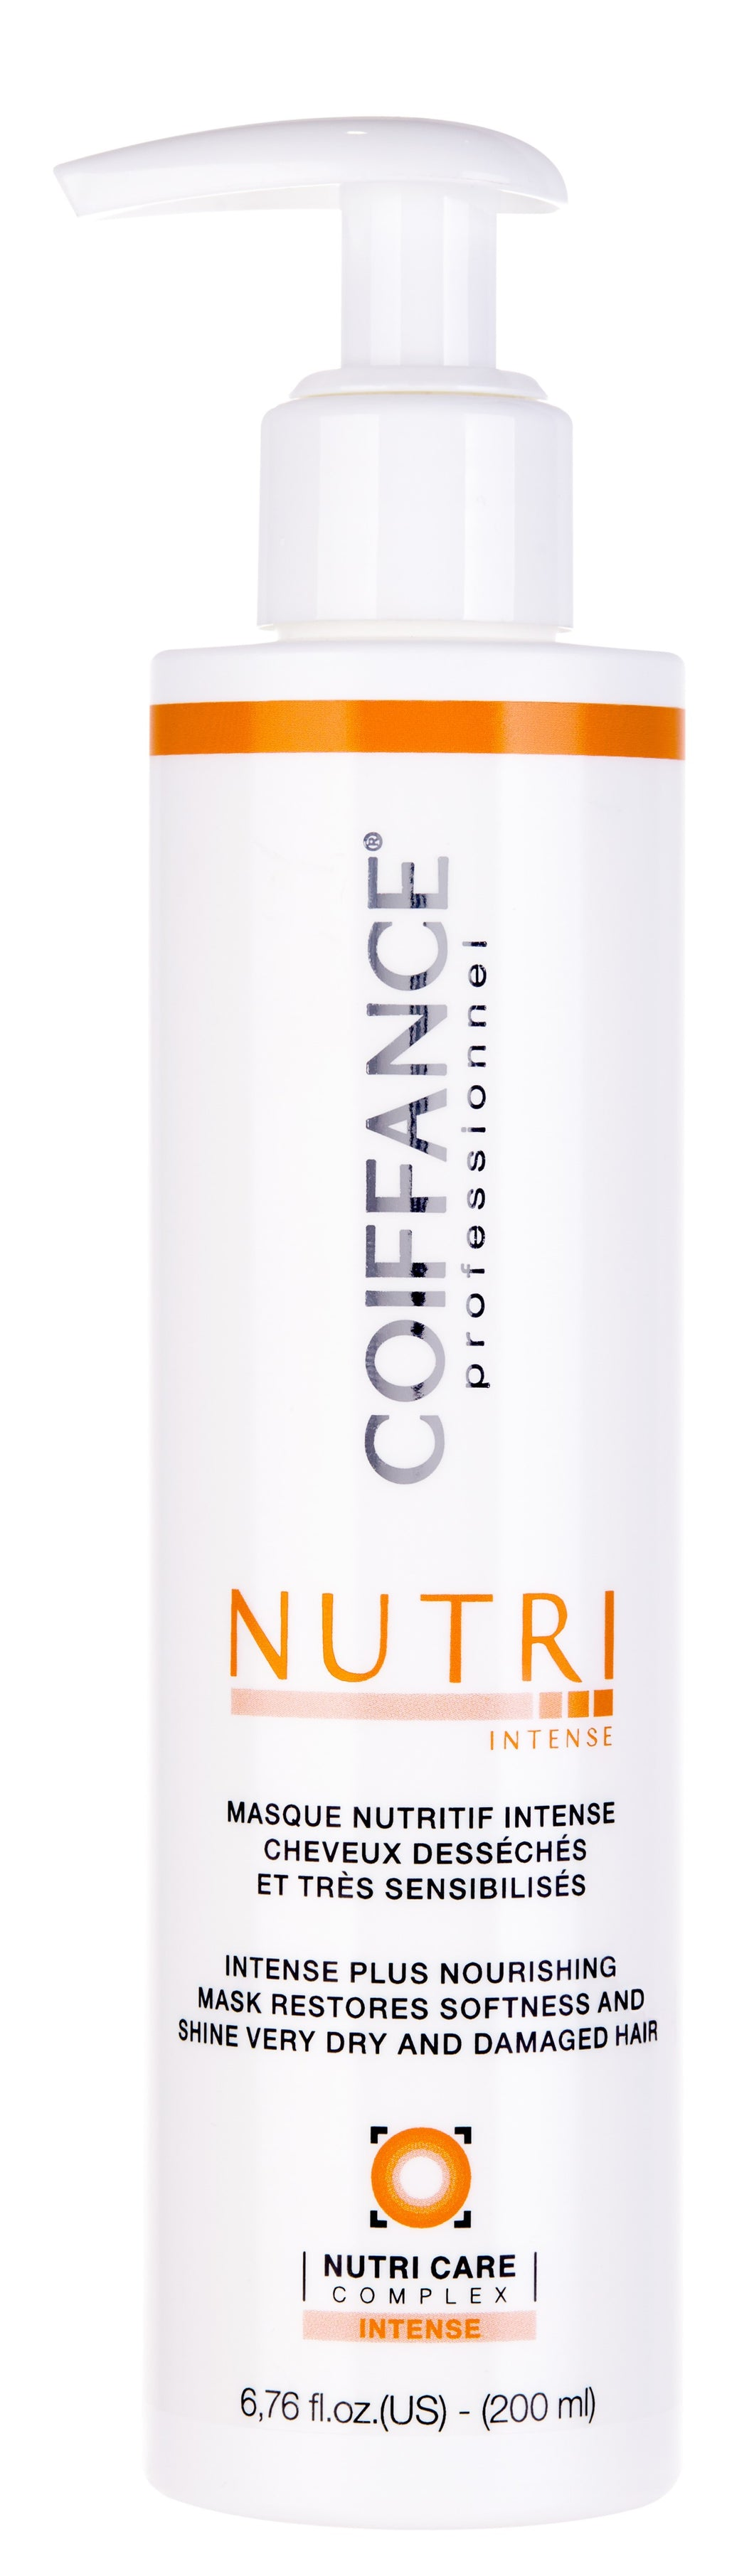 nutri intense nourishing mask